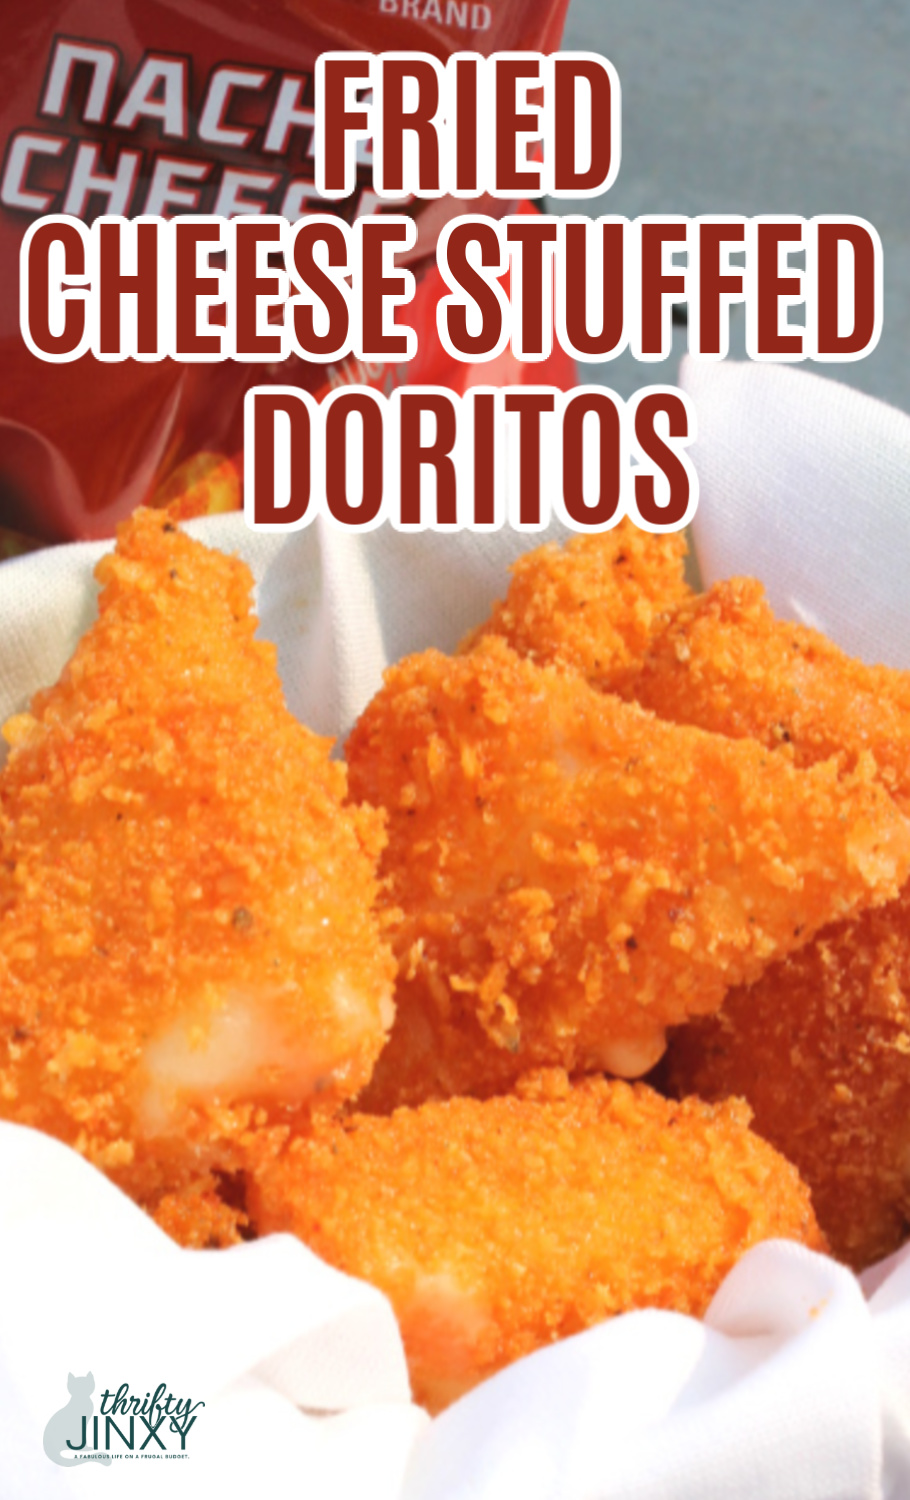 Fried Cheese Stuffed Doritos Recipe (1)